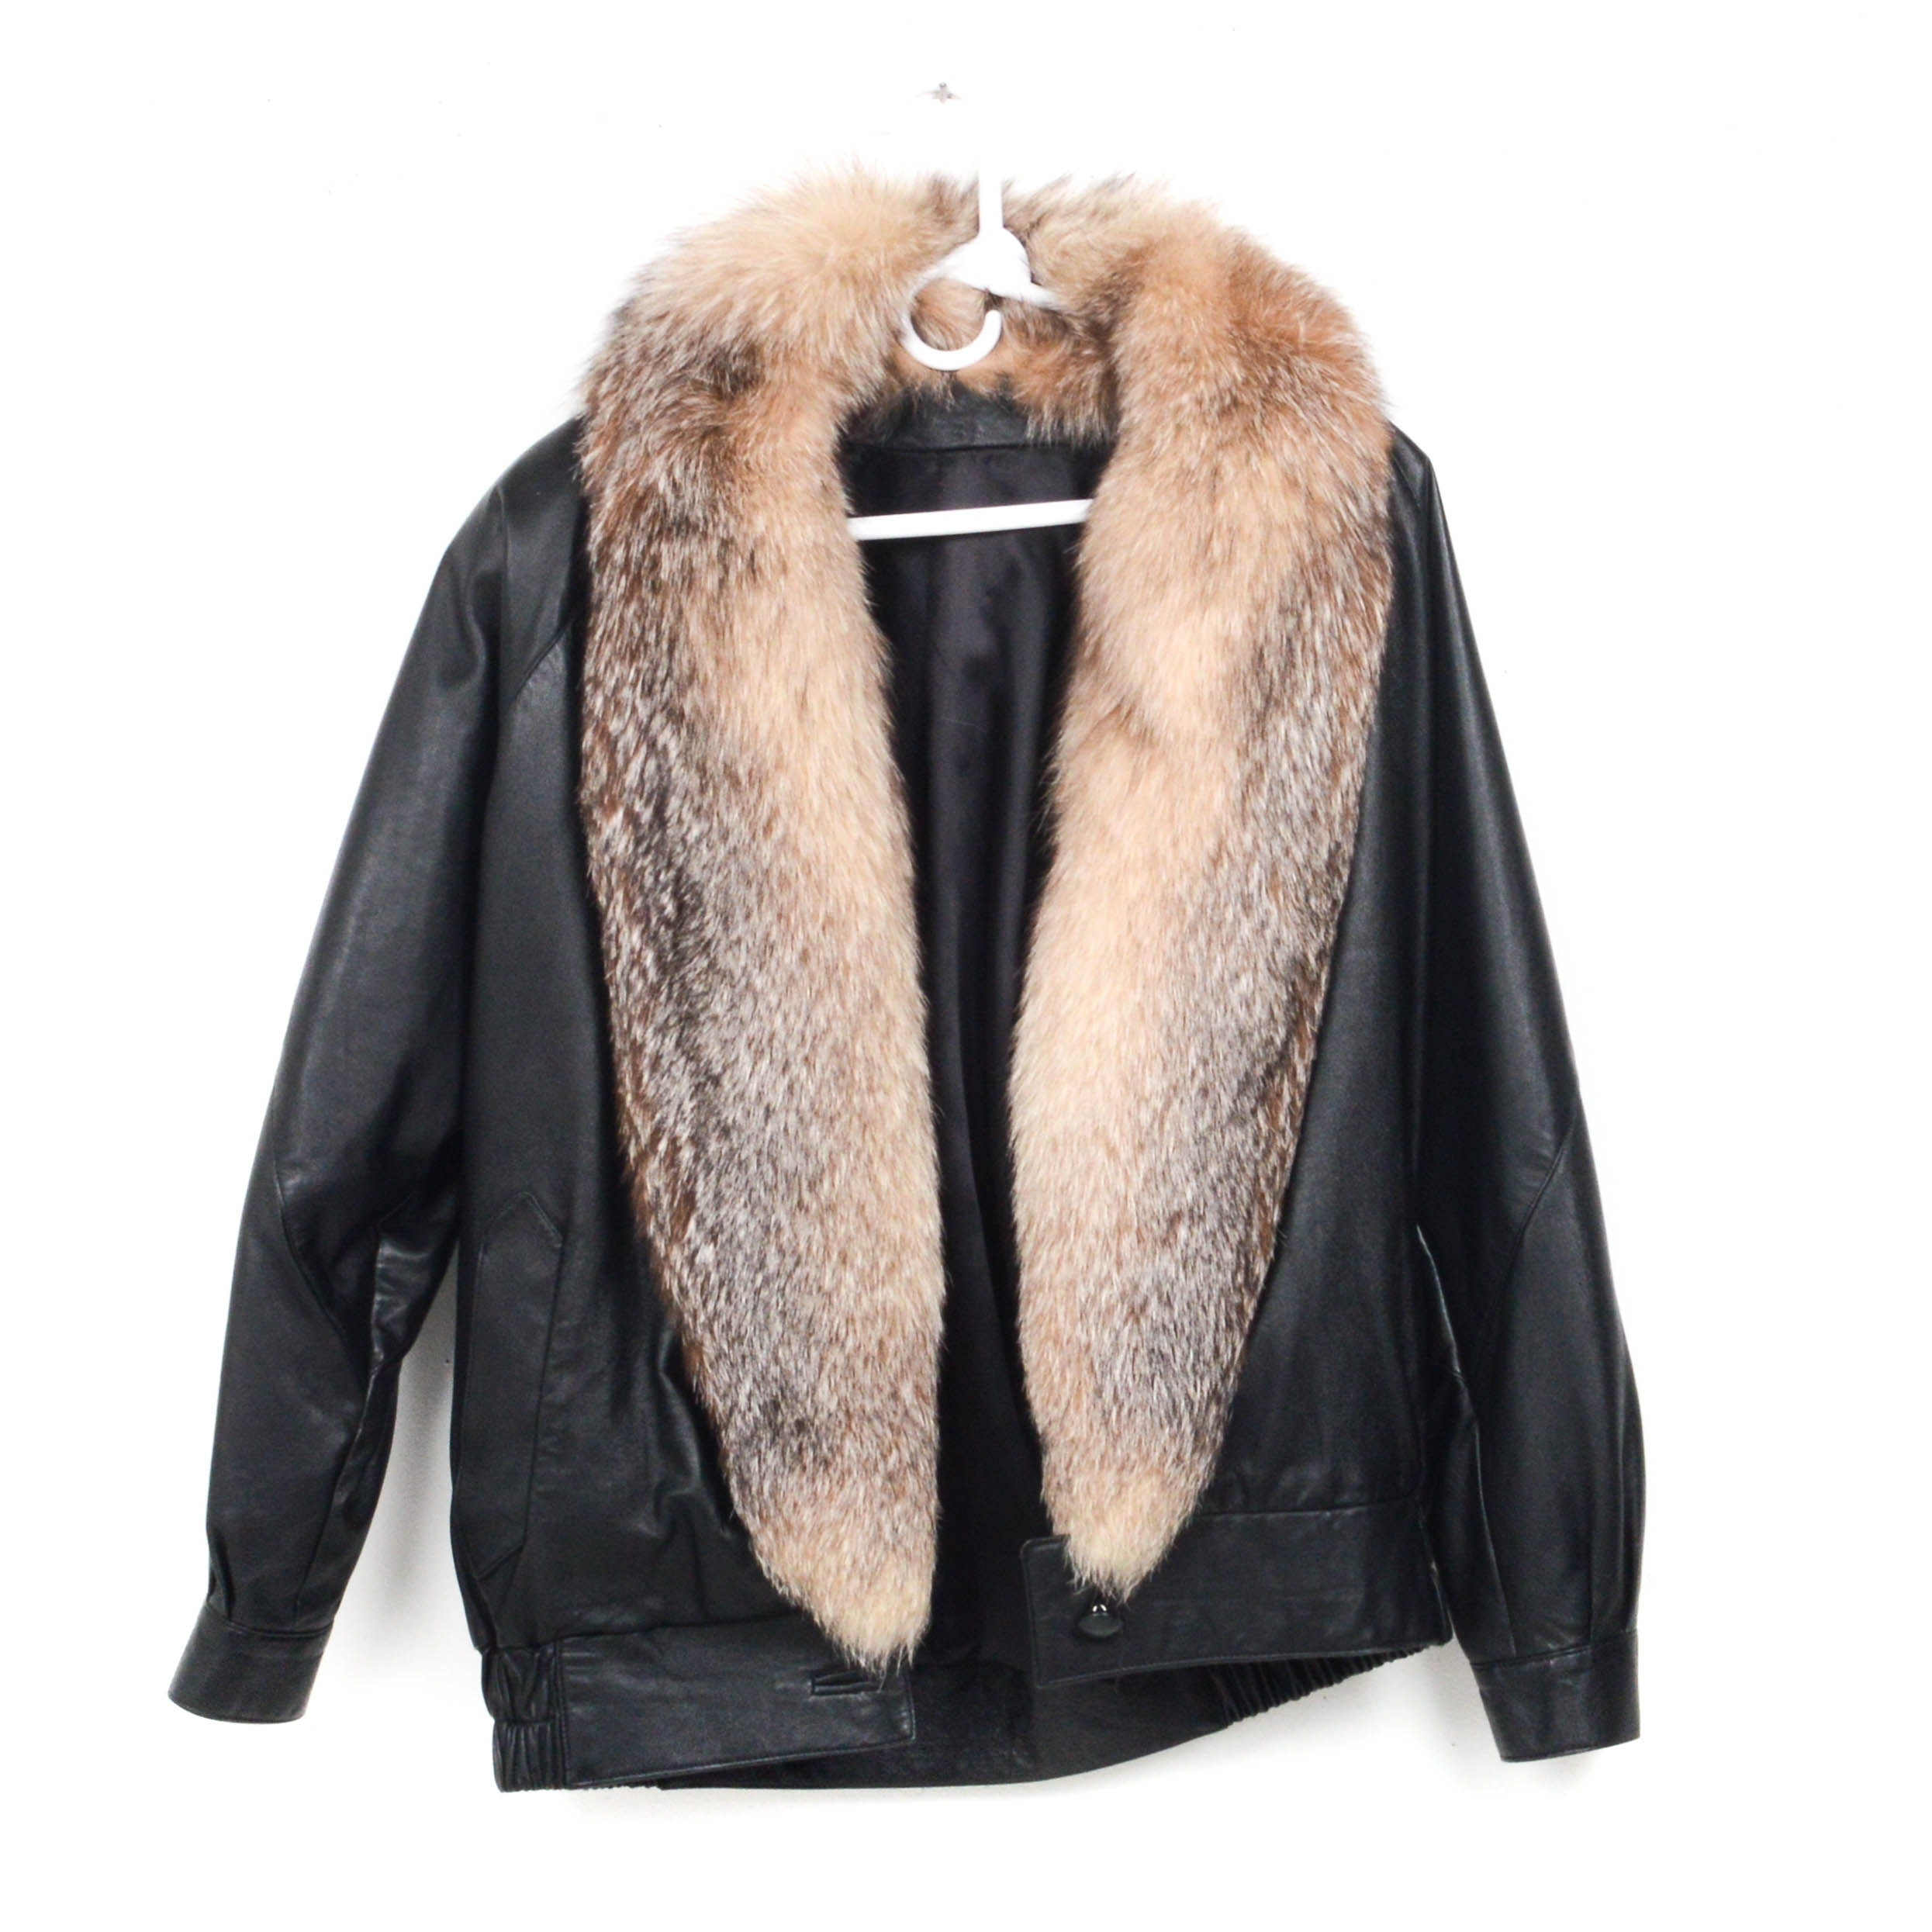 Black Leather Jacket With Crystal Fox Fur Collar